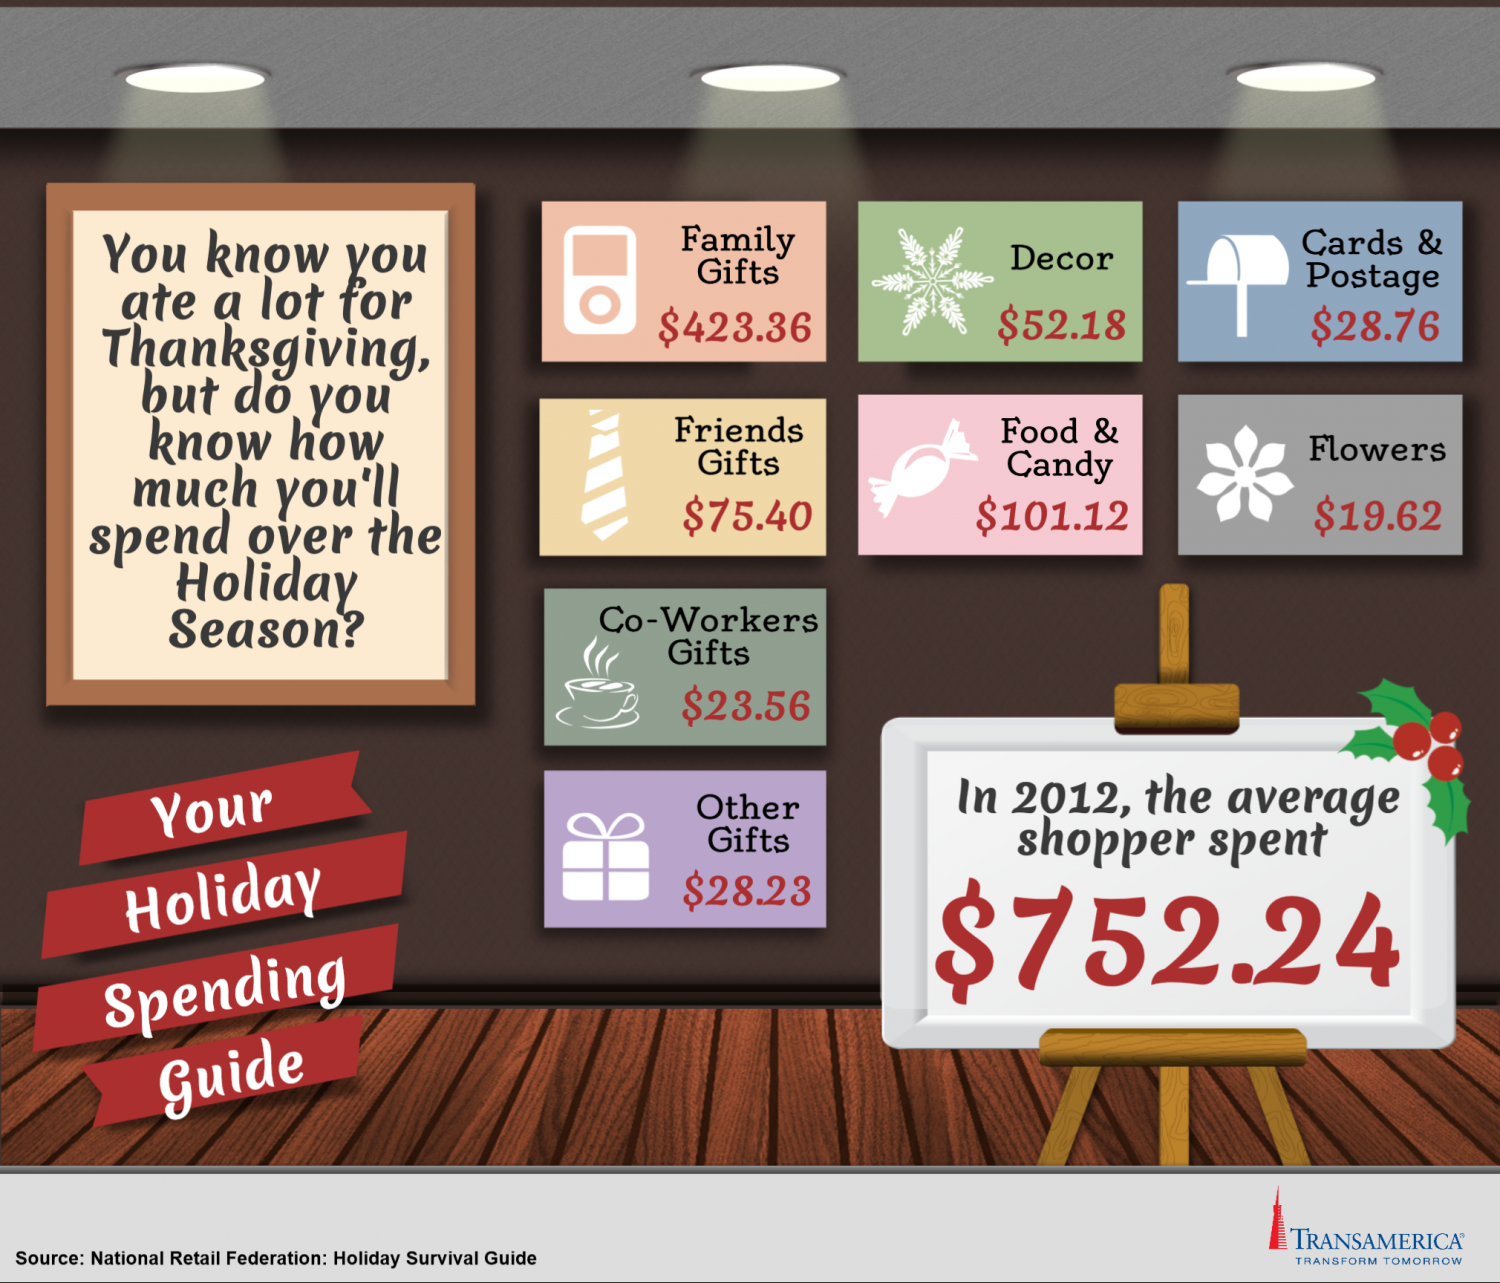 Your Holiday Spending Guide Infographic